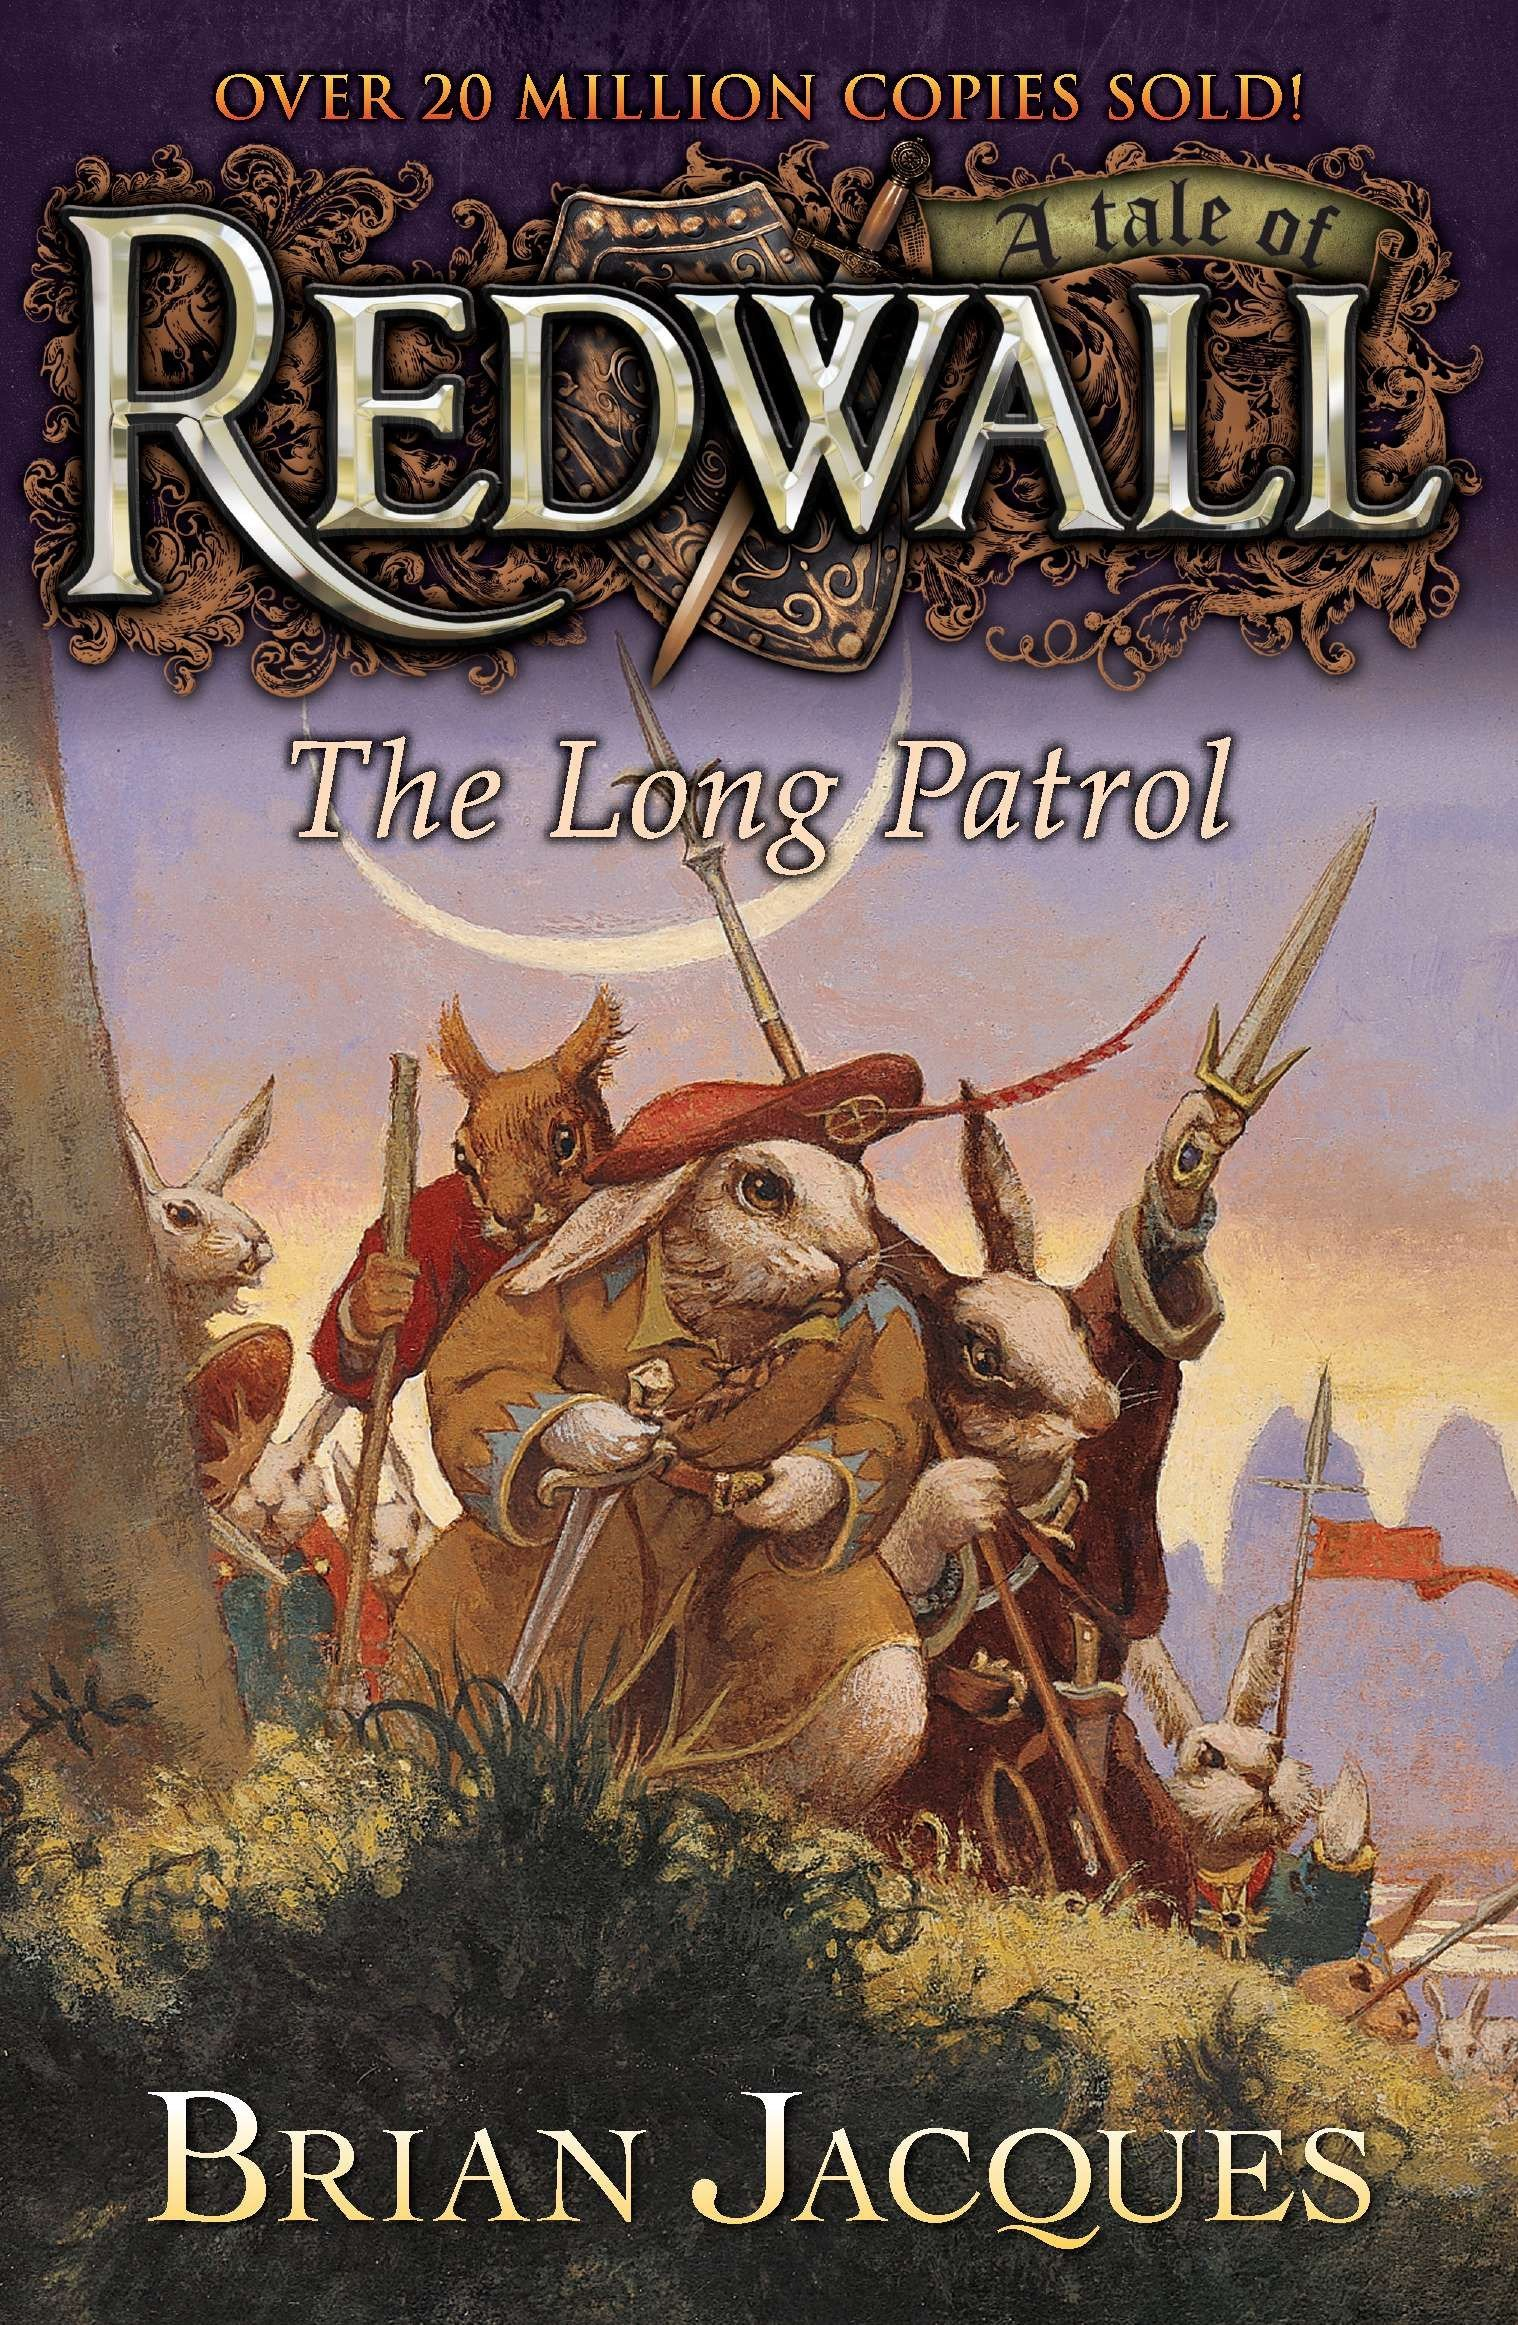 Amazon.com: The Long Patrol: A Tale from Redwall (9780142402450): Brian  Jacques, Allan Curless: Books